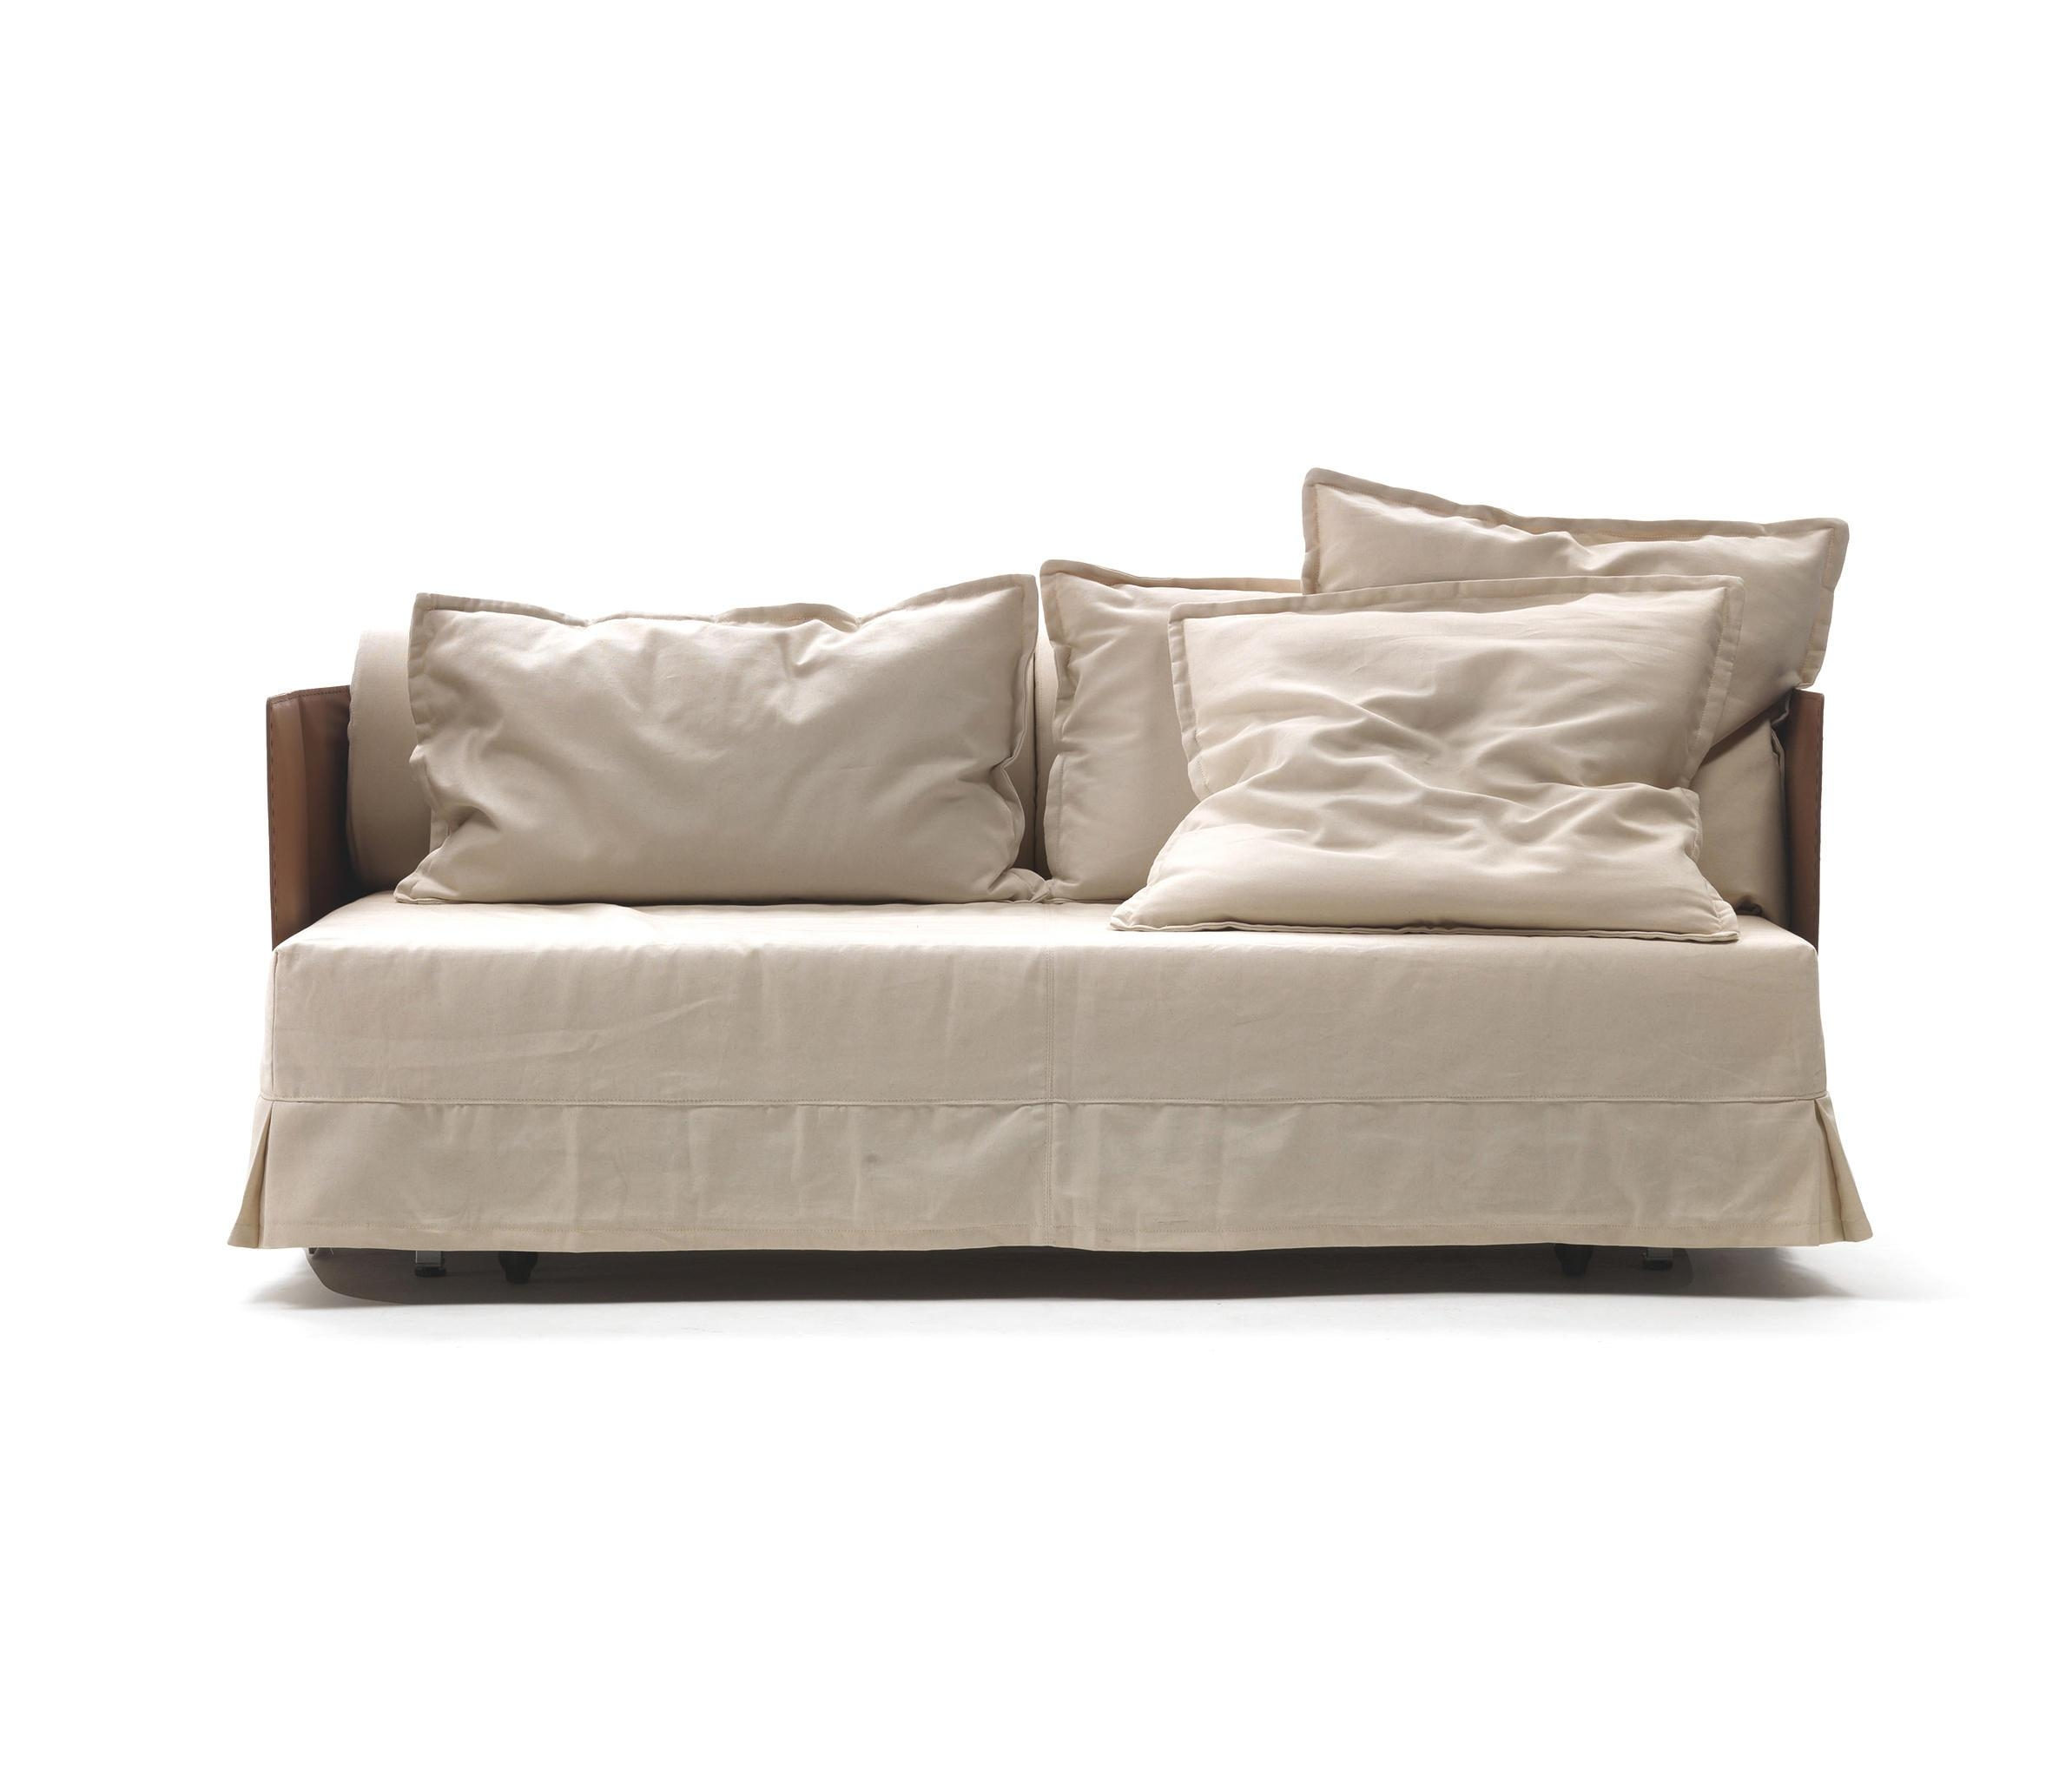 Eden – Sofa Beds From Flexform | Architonic Within Flexform Sofas (Image 2 of 20)